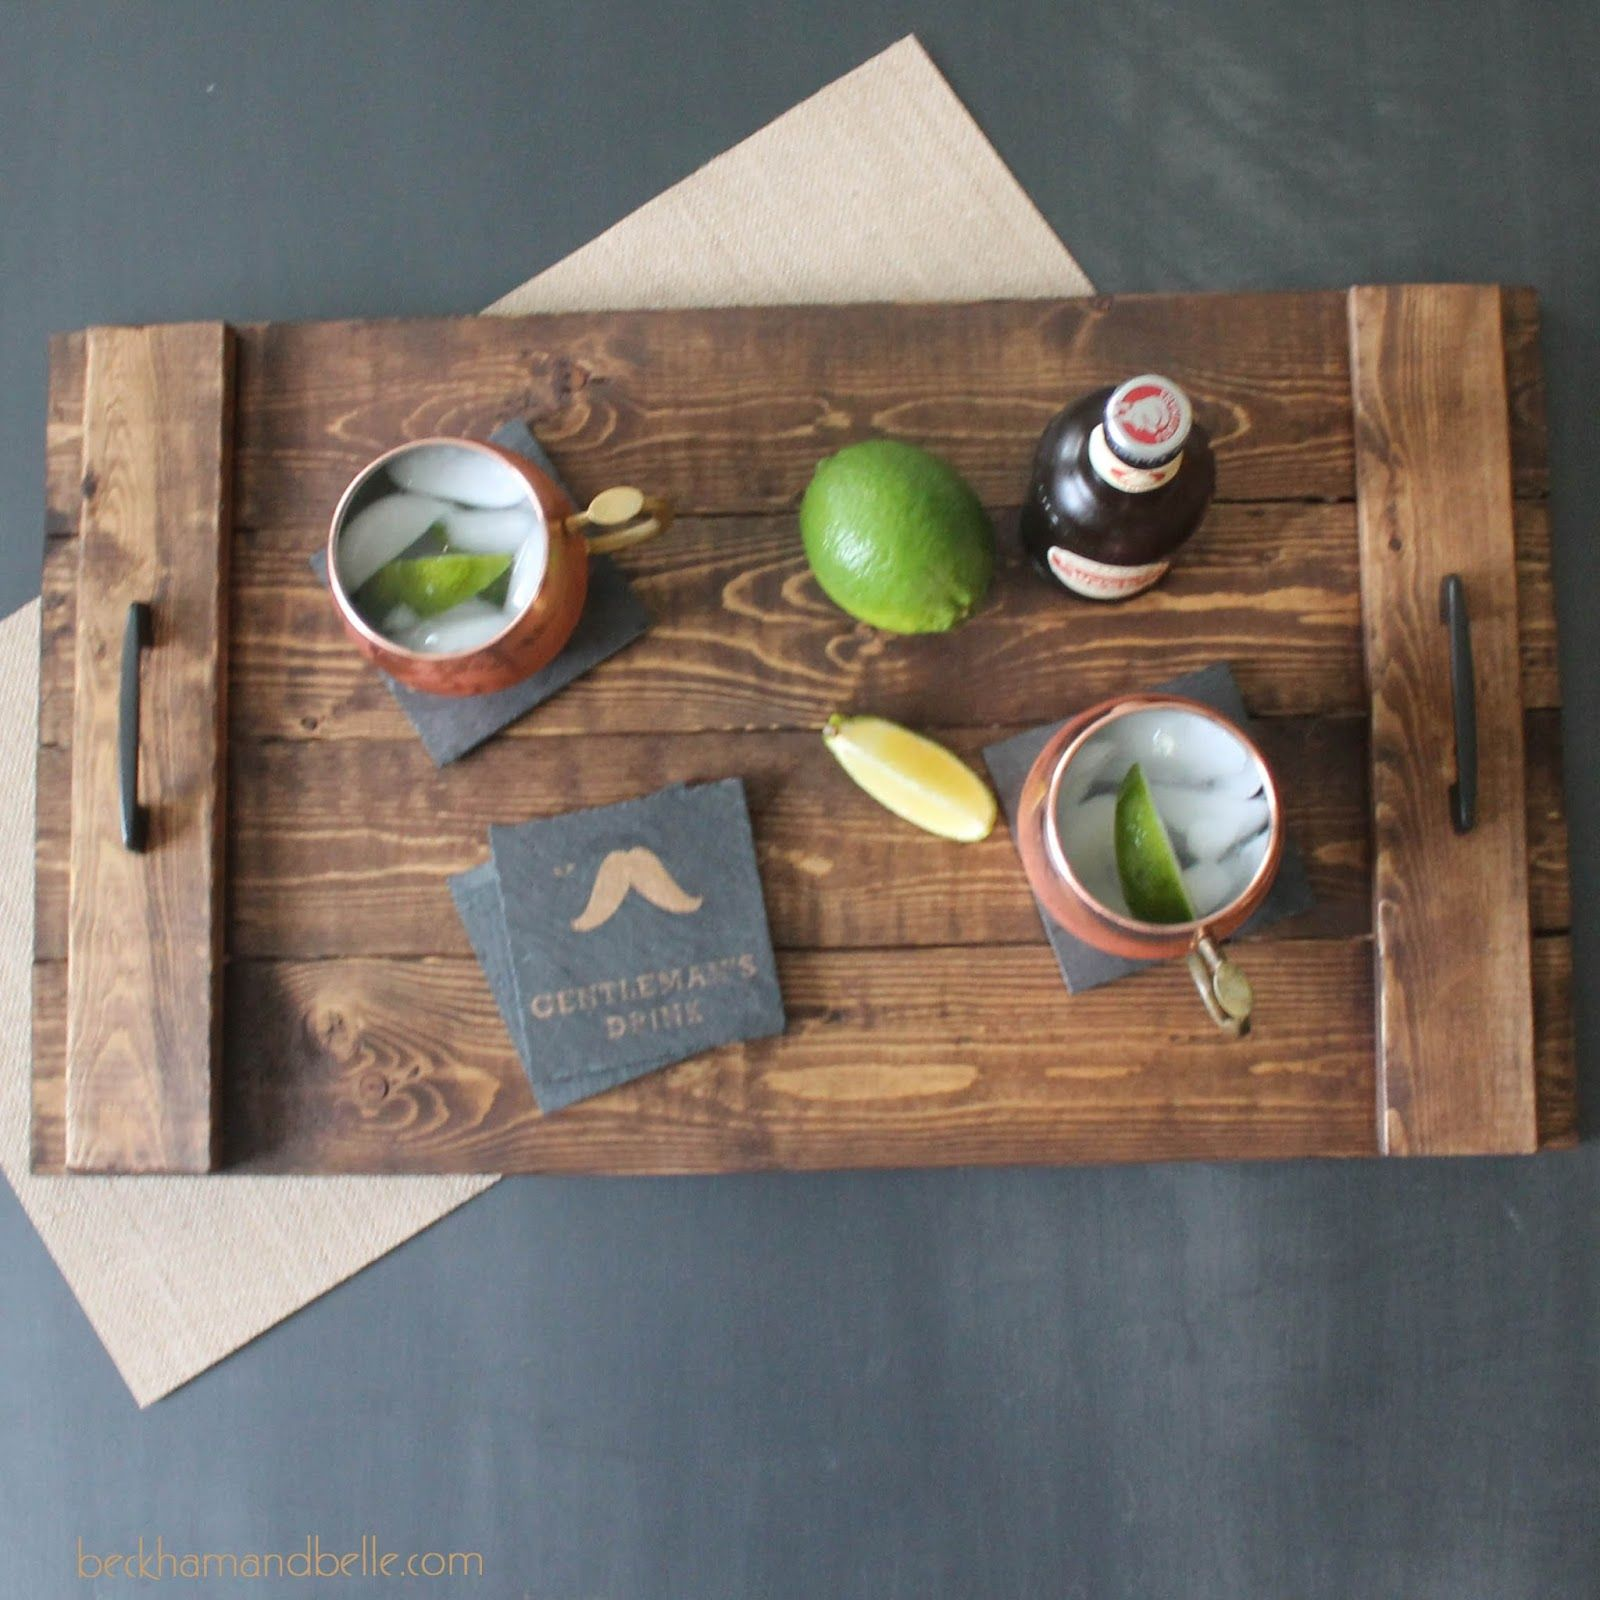 DIY Holiday Gifts - Wooden Serving Tray